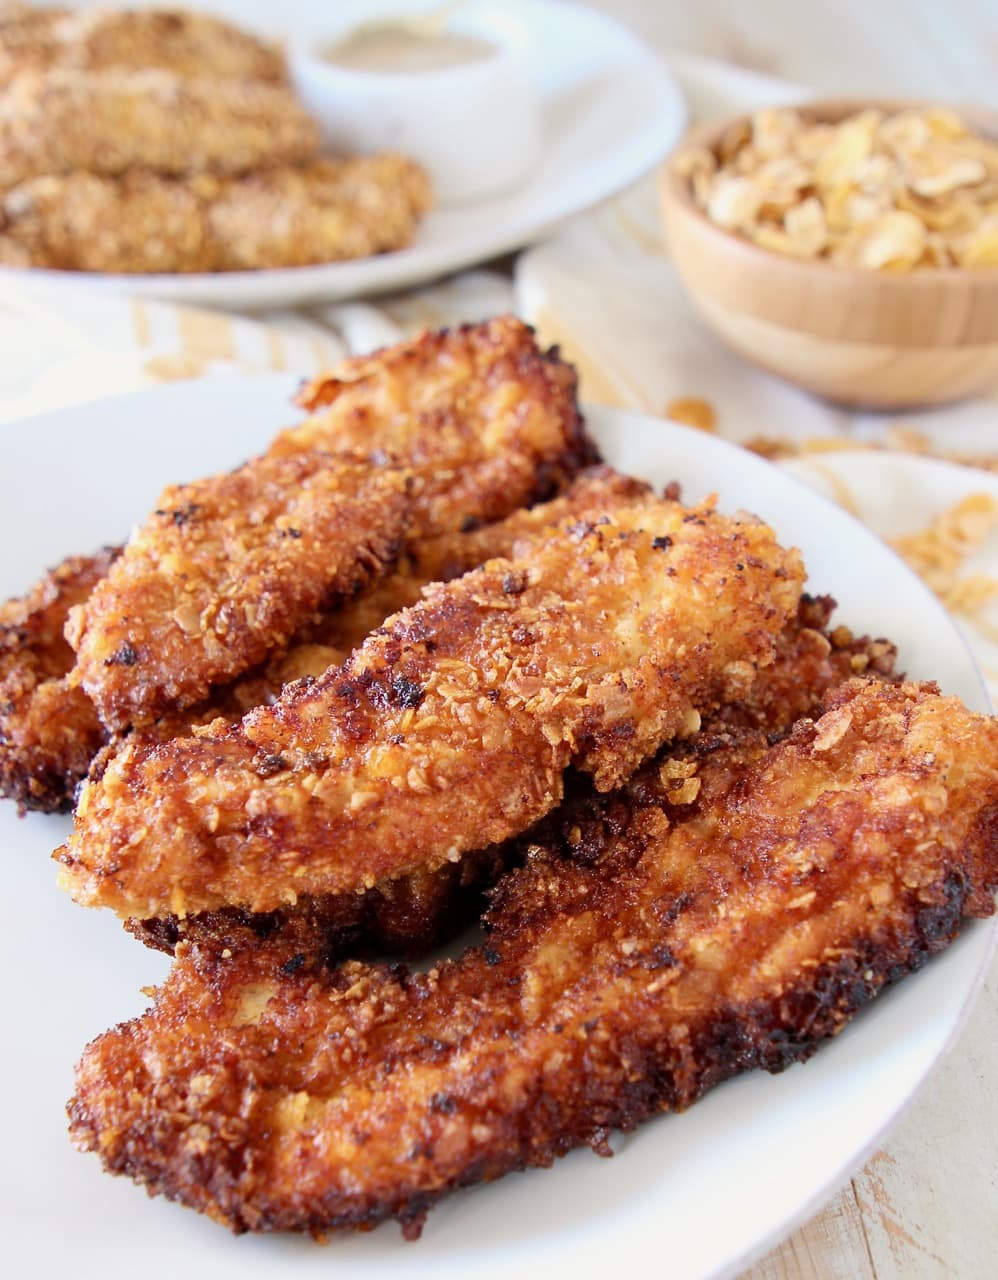 Fried chicken strips on plate with baked chicken strips on plate behind it with bowl of cereal